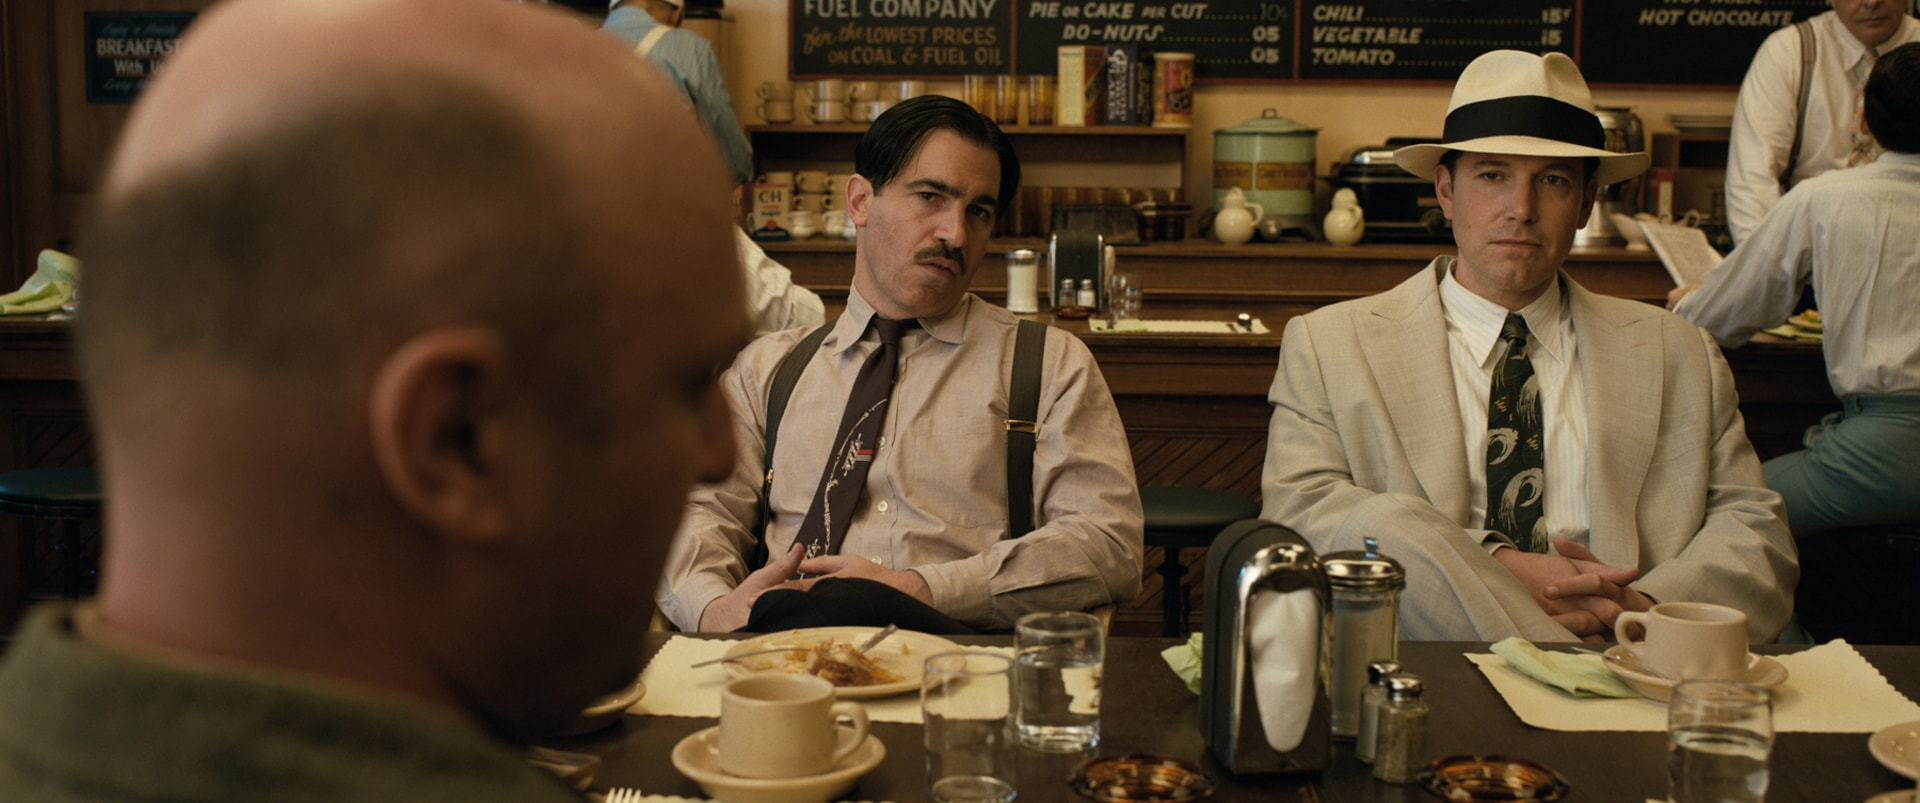 """CHRIS MESSINA as Dion Bartolo and BEN AFFLECK as Joe Coughlin in Warner Bros. Pictures' dramatic crime thriller """"LIVE BY NIGHT,"""" a Warner Bros. Pictures release."""